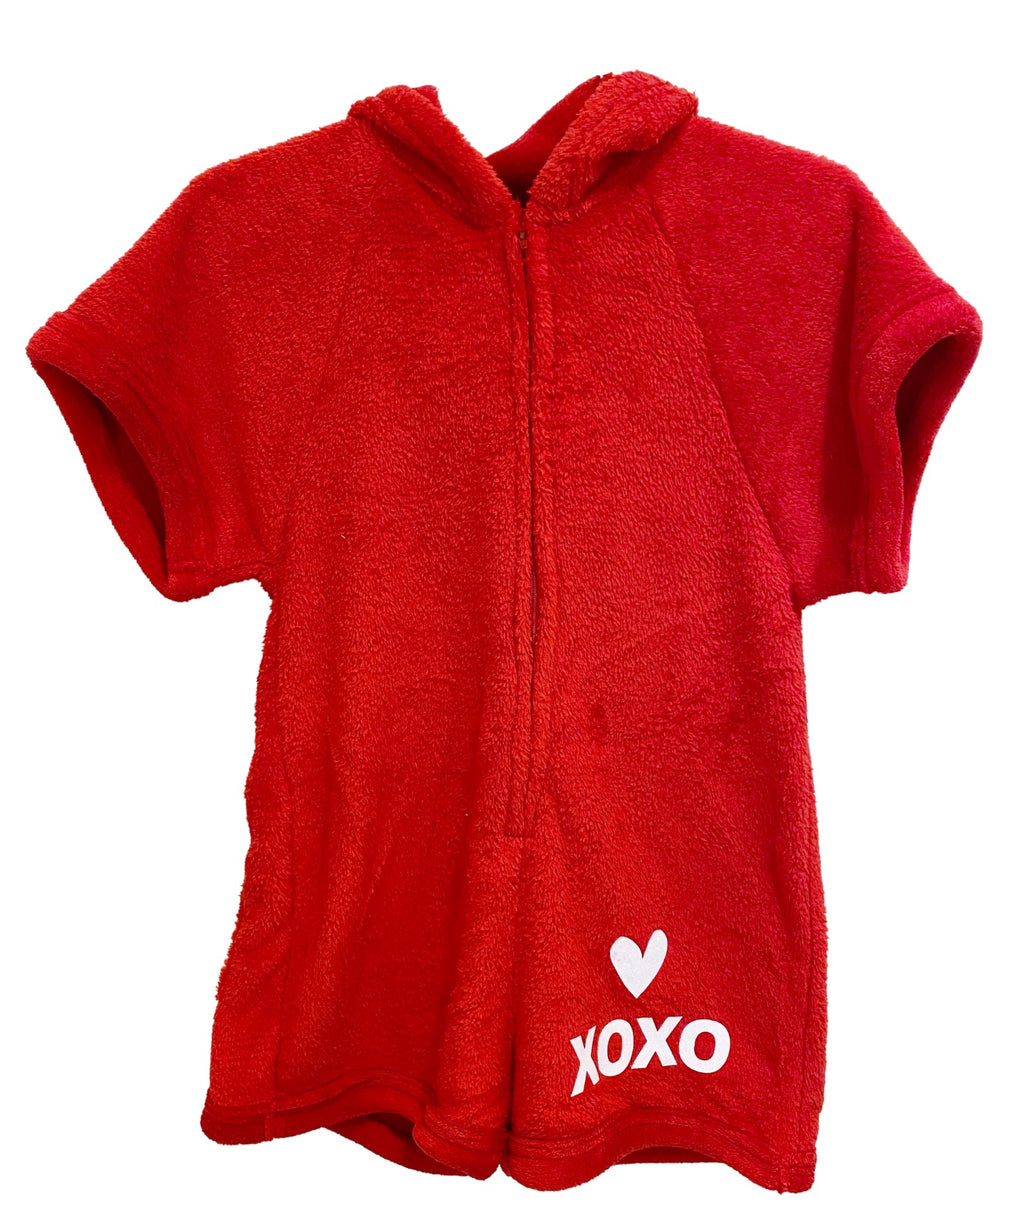 Made with Love and Kisses Girls Red XO Heart Romper